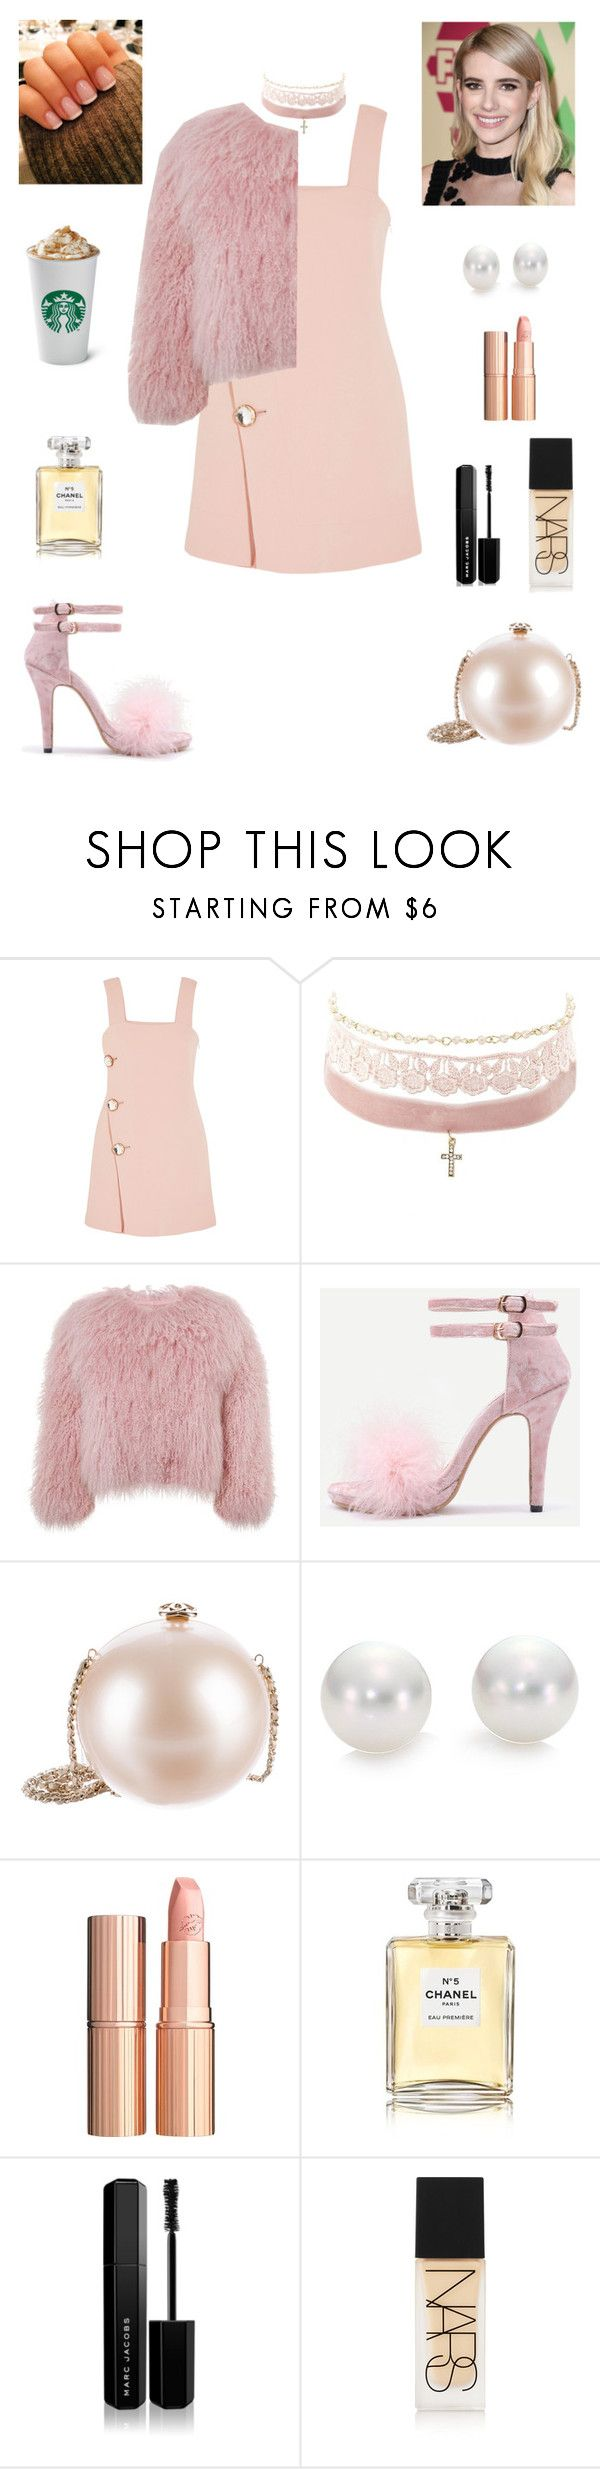 """Scream queens #2"" by leah93-1 ❤ liked on Polyvore featuring Marni, Charlotte Russe, Charlotte Simone, Chanel, Mikimoto, Charlotte Tilbury, Marc Jacobs and NARS Cosmetics"